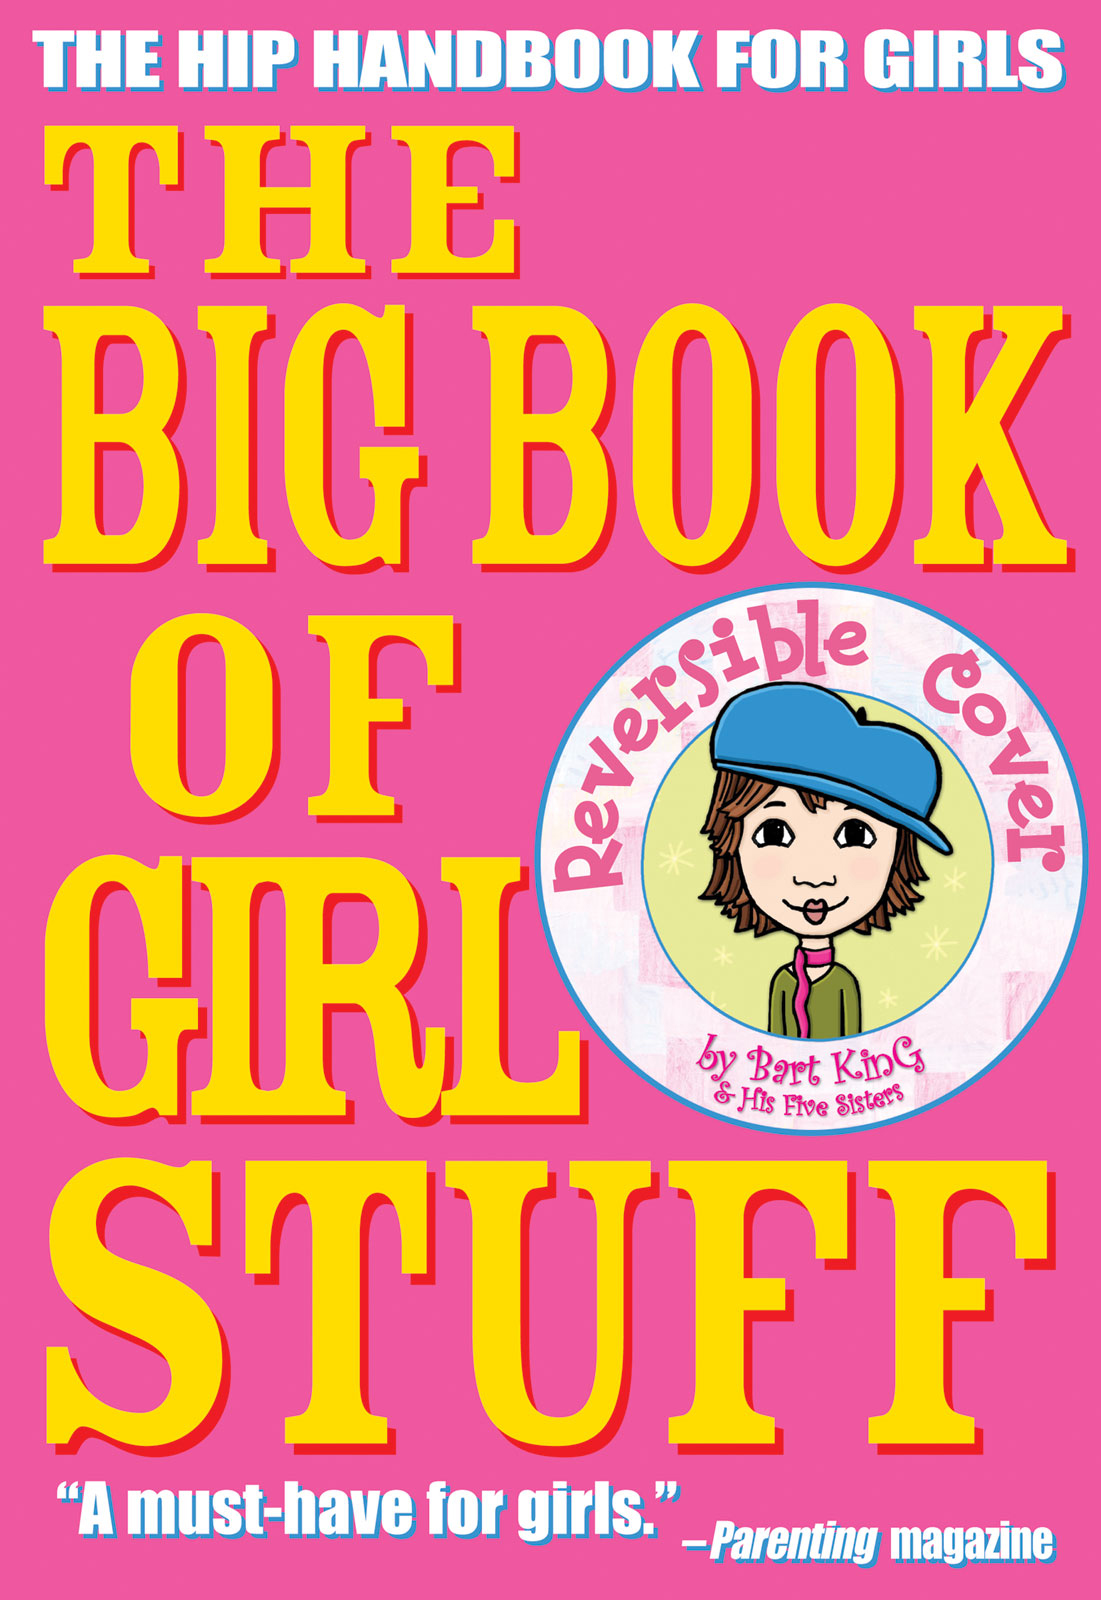 The Big Book of Girl Stuff By: Bart King